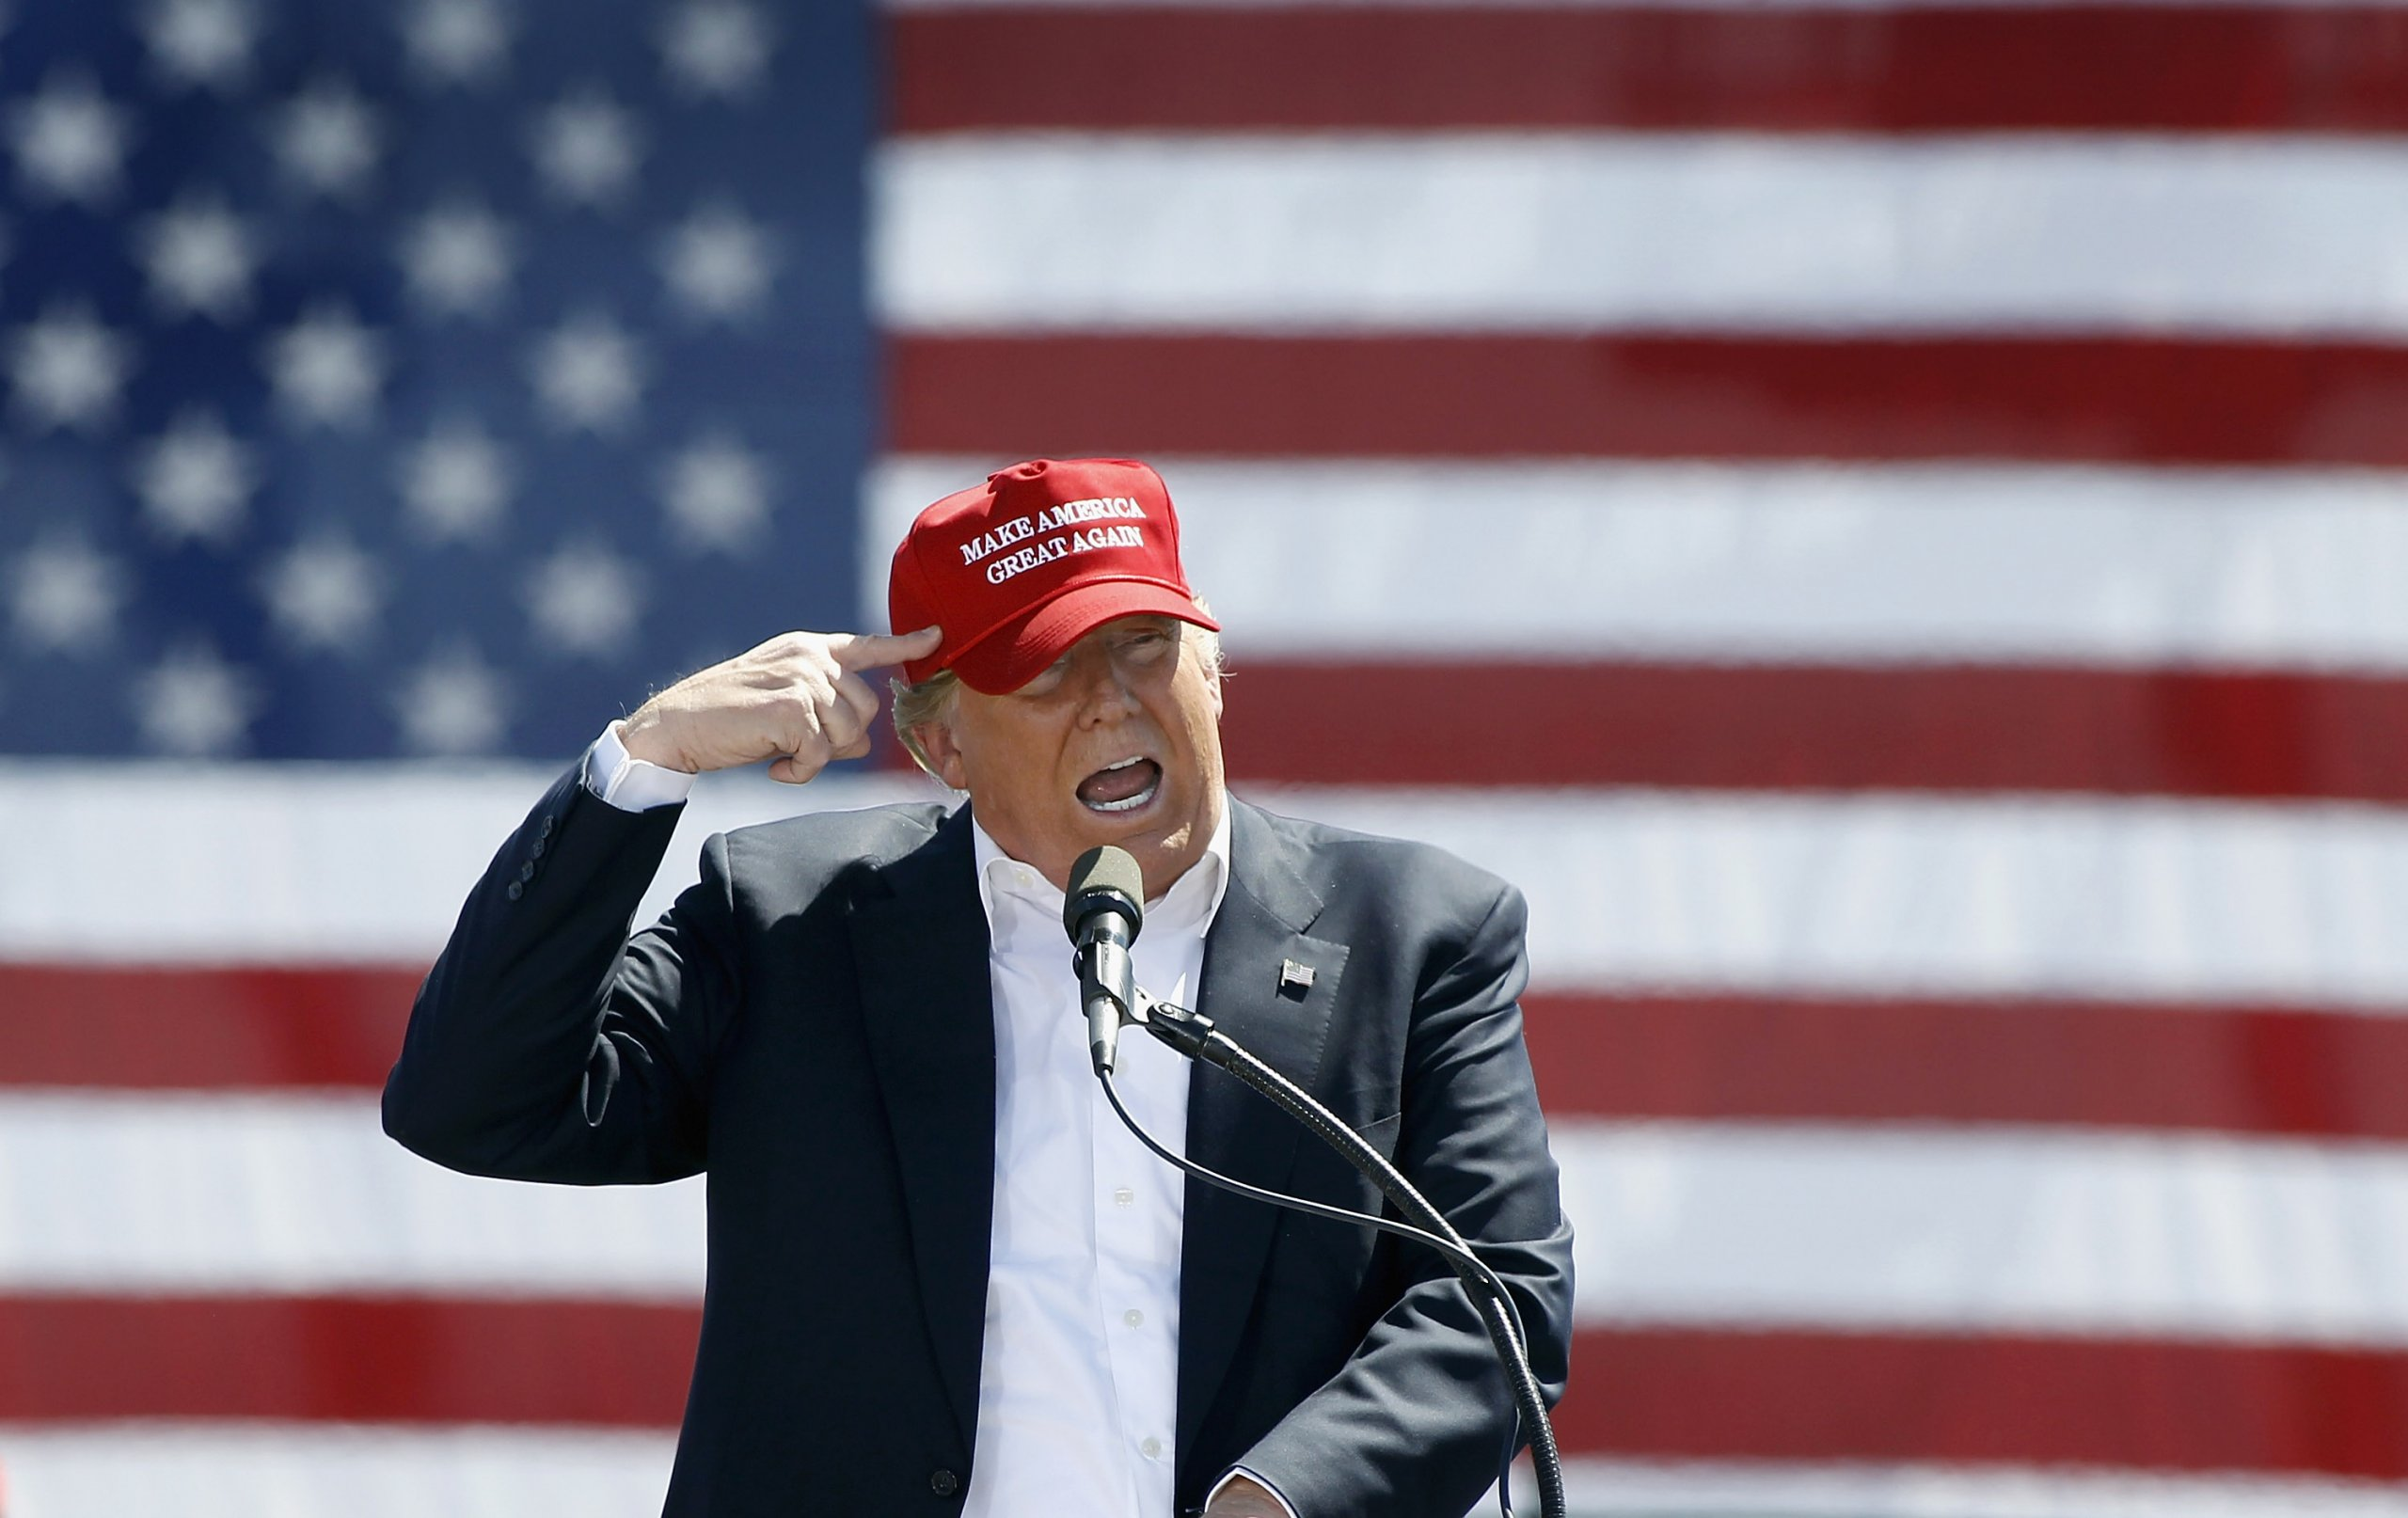 Donald Trump points to his head, wearing a red hat, and standing in front of an American flag.